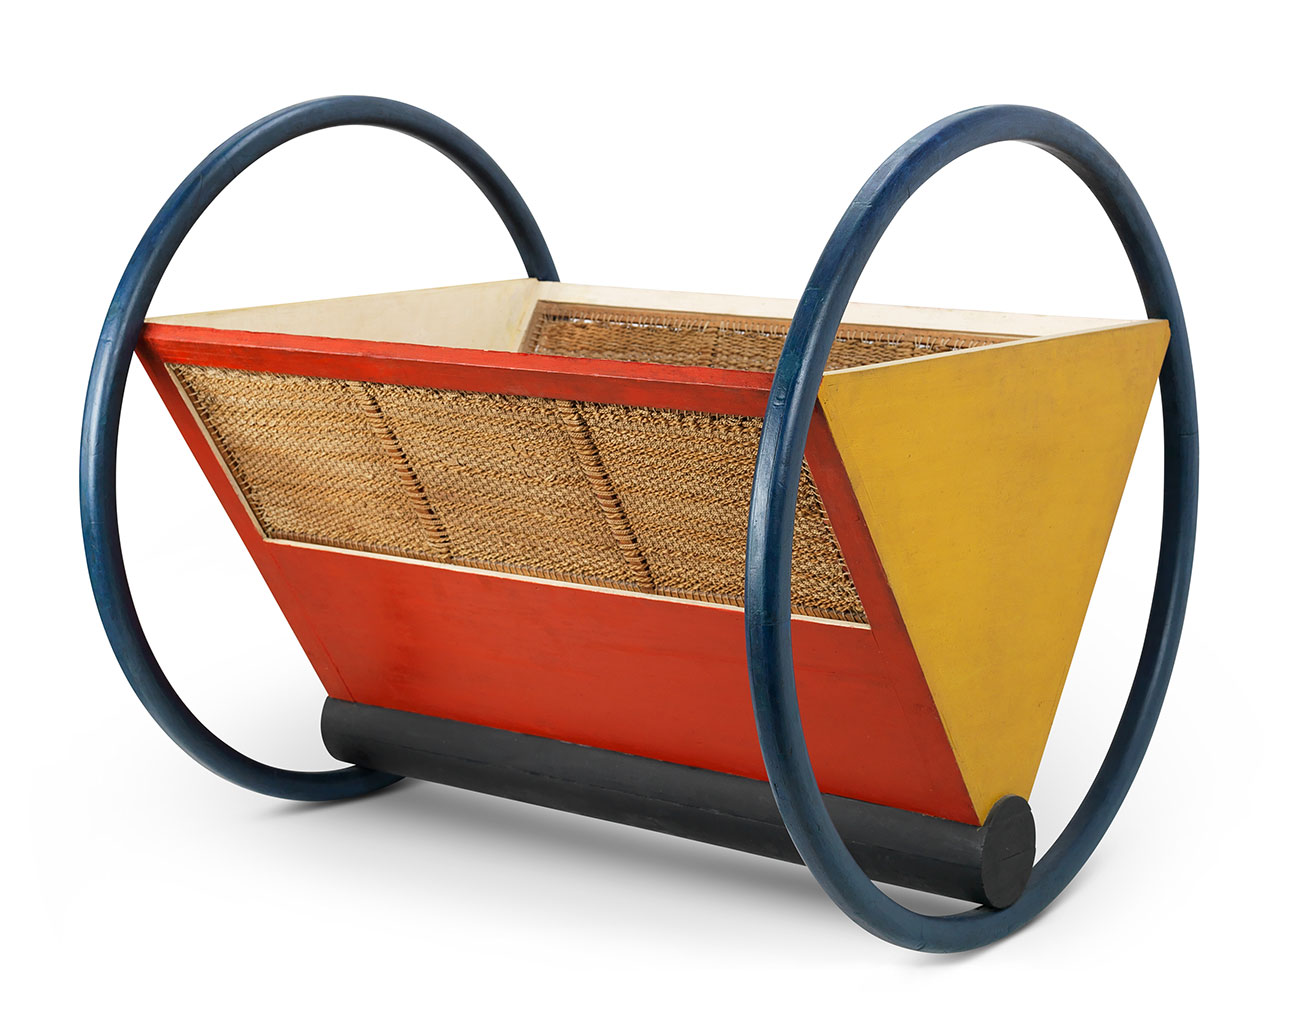 Photo of a red and yellow, triangular cradle, with a blue circular wheel on each side.